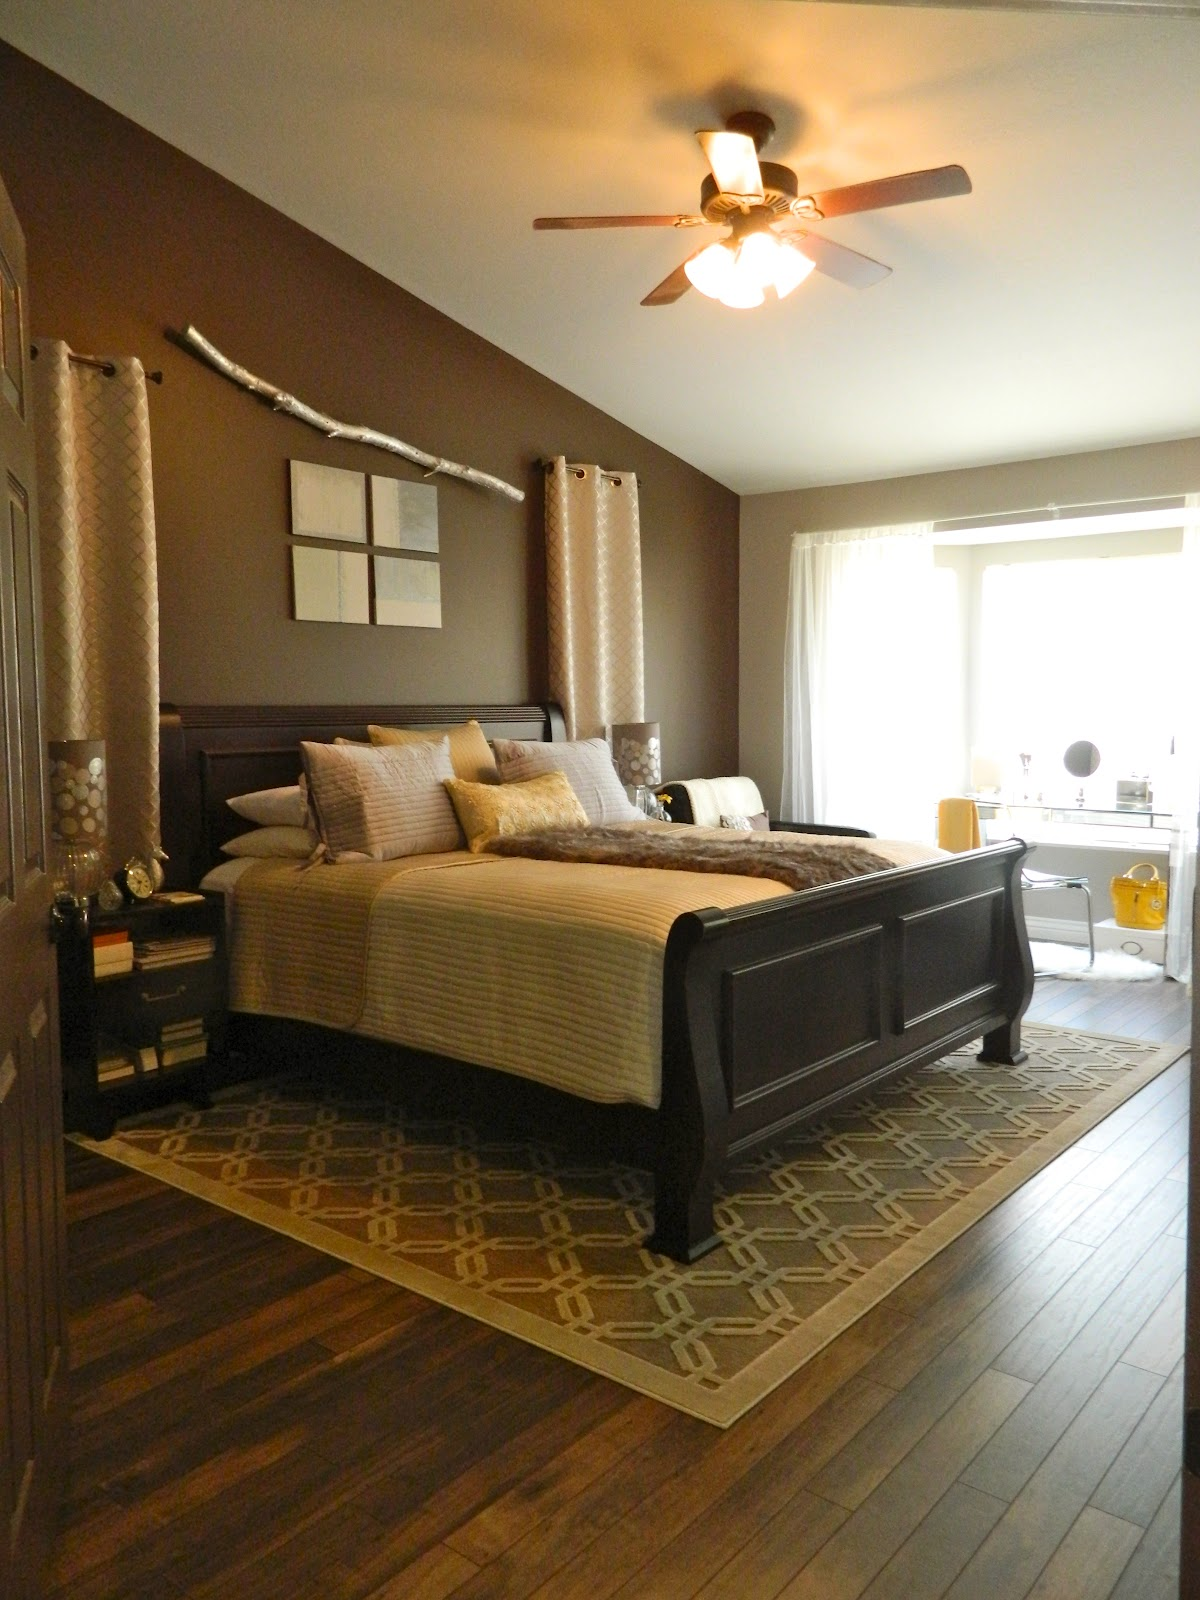 Smitten By Abigail Mr And Mrs Smitten Your Suite Is Ready Master Bedroom Reveal